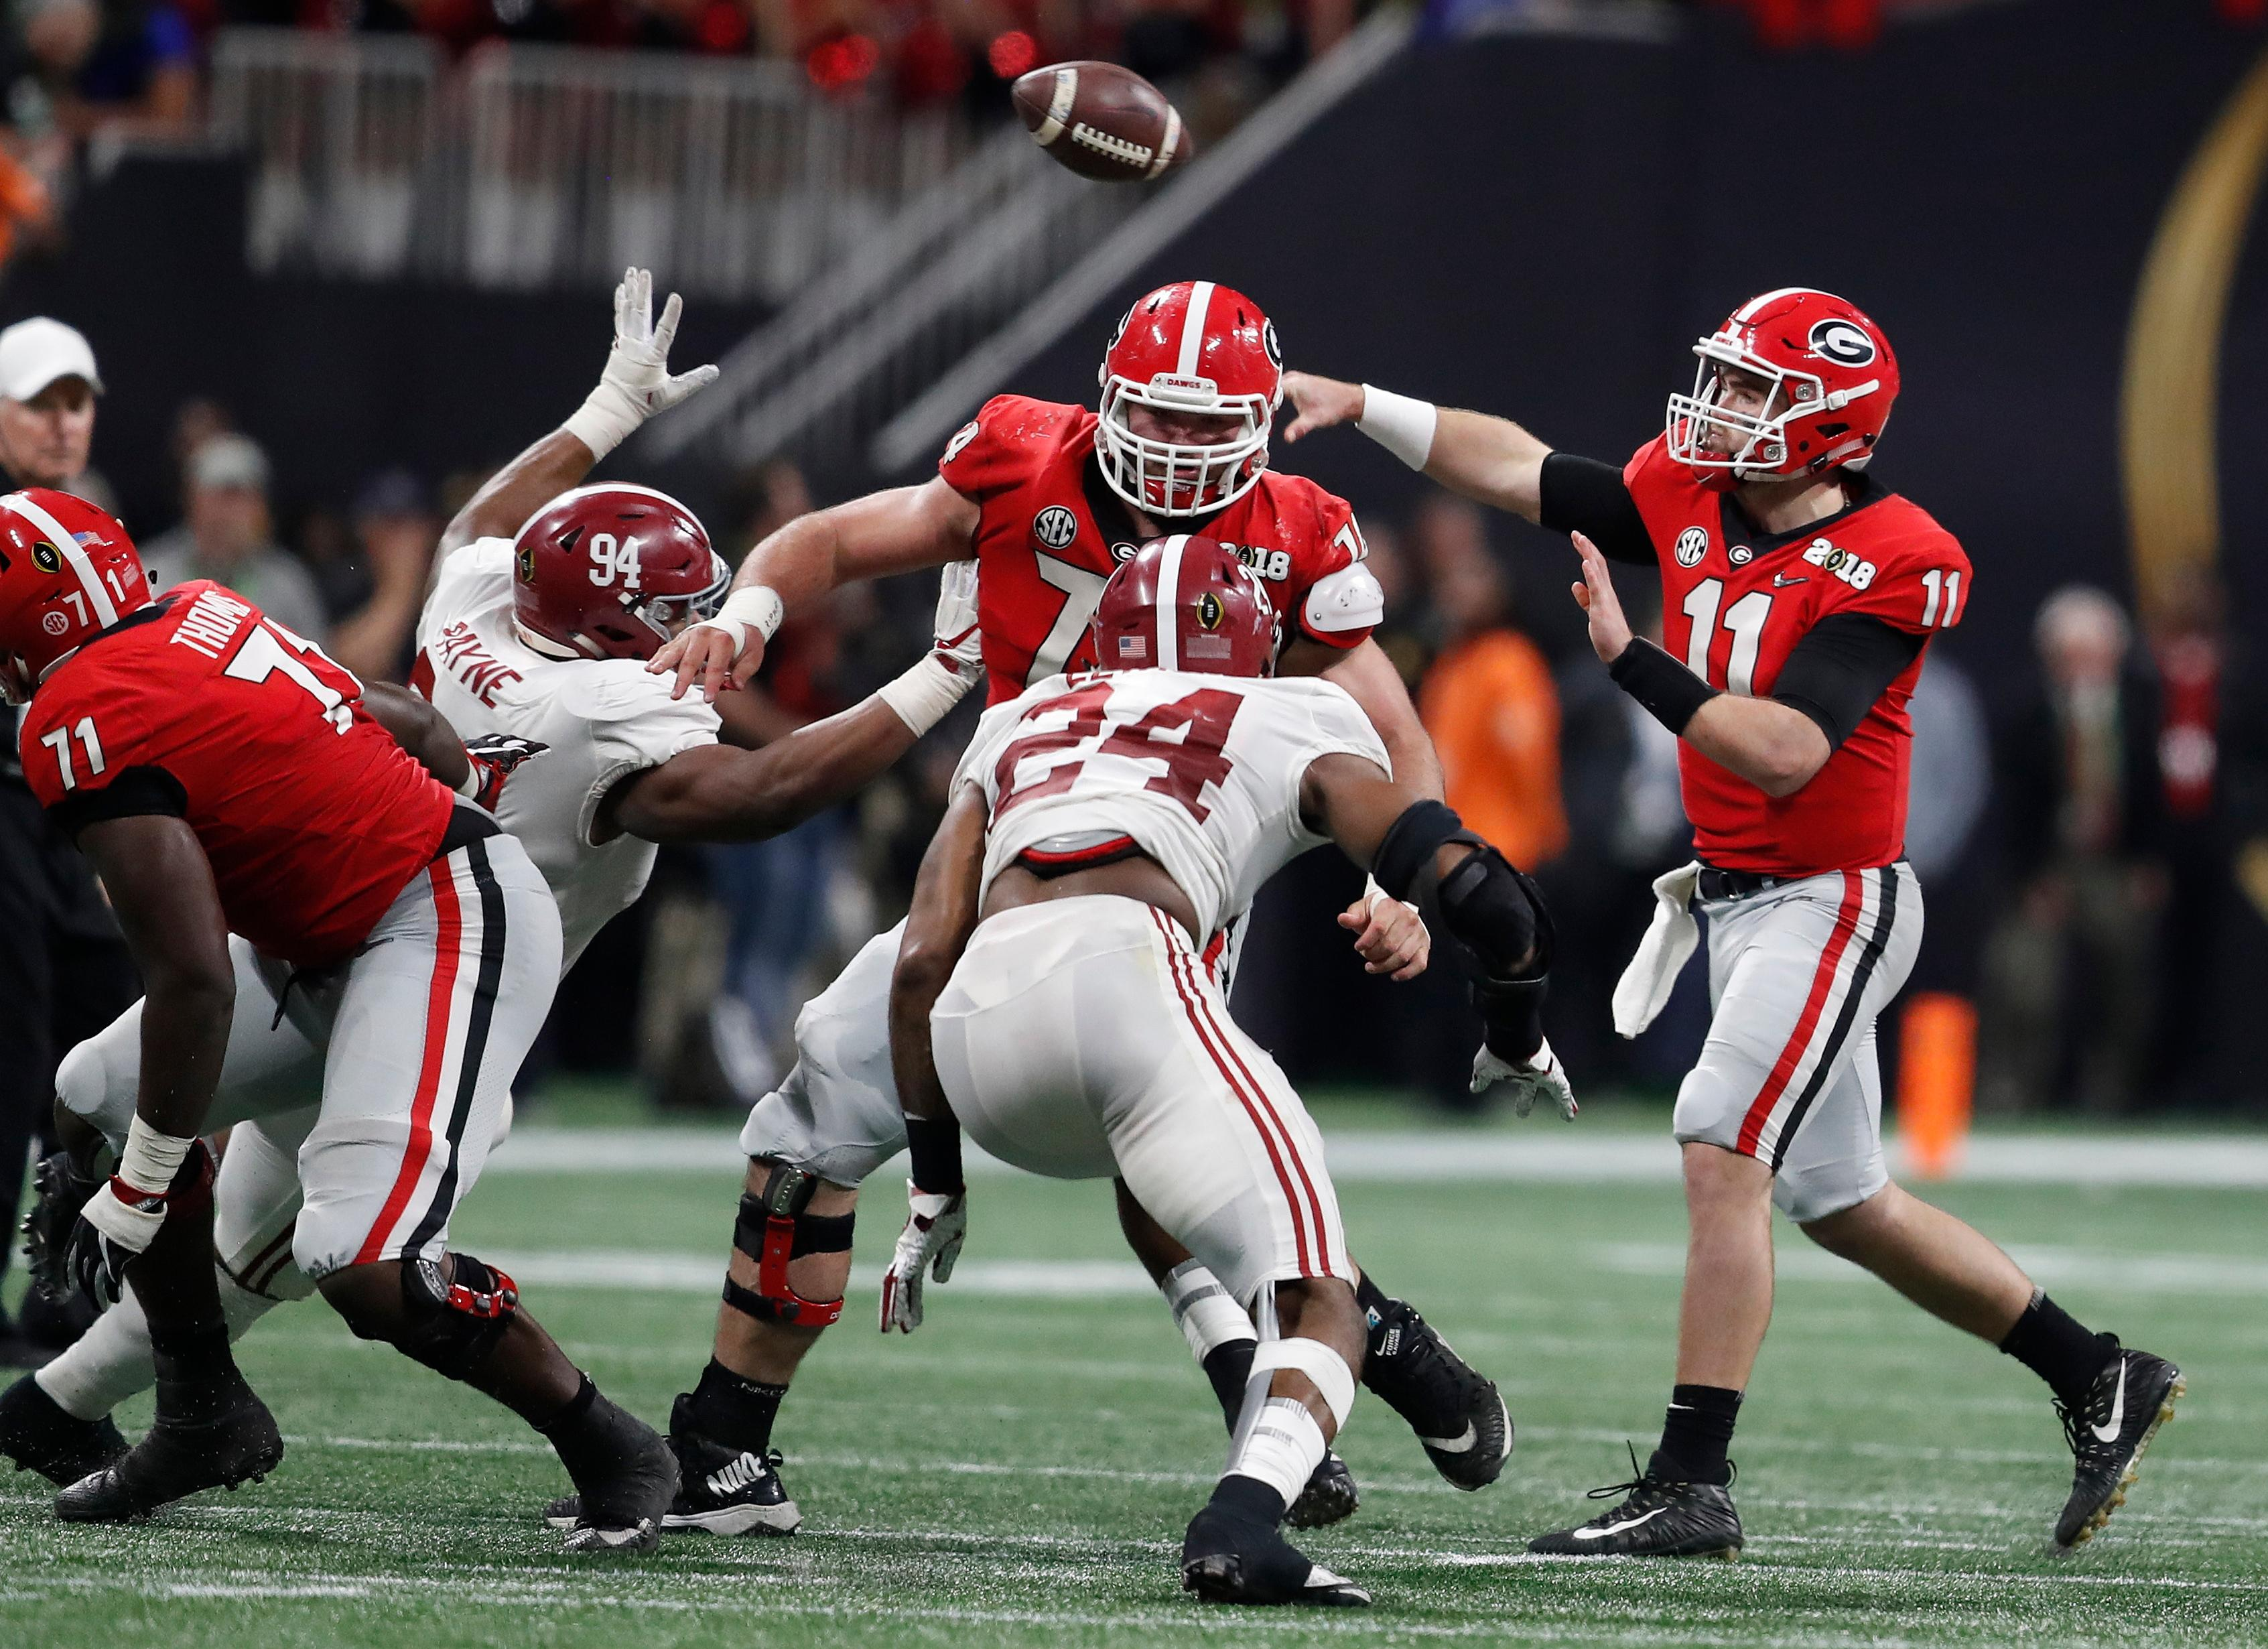 Georgia quarterback Jake Fromm throws during the second half of the NCAA college football playoff championship game Monday, Jan. 8, 2018, in Atlanta. (AP Photo/David Goldman)